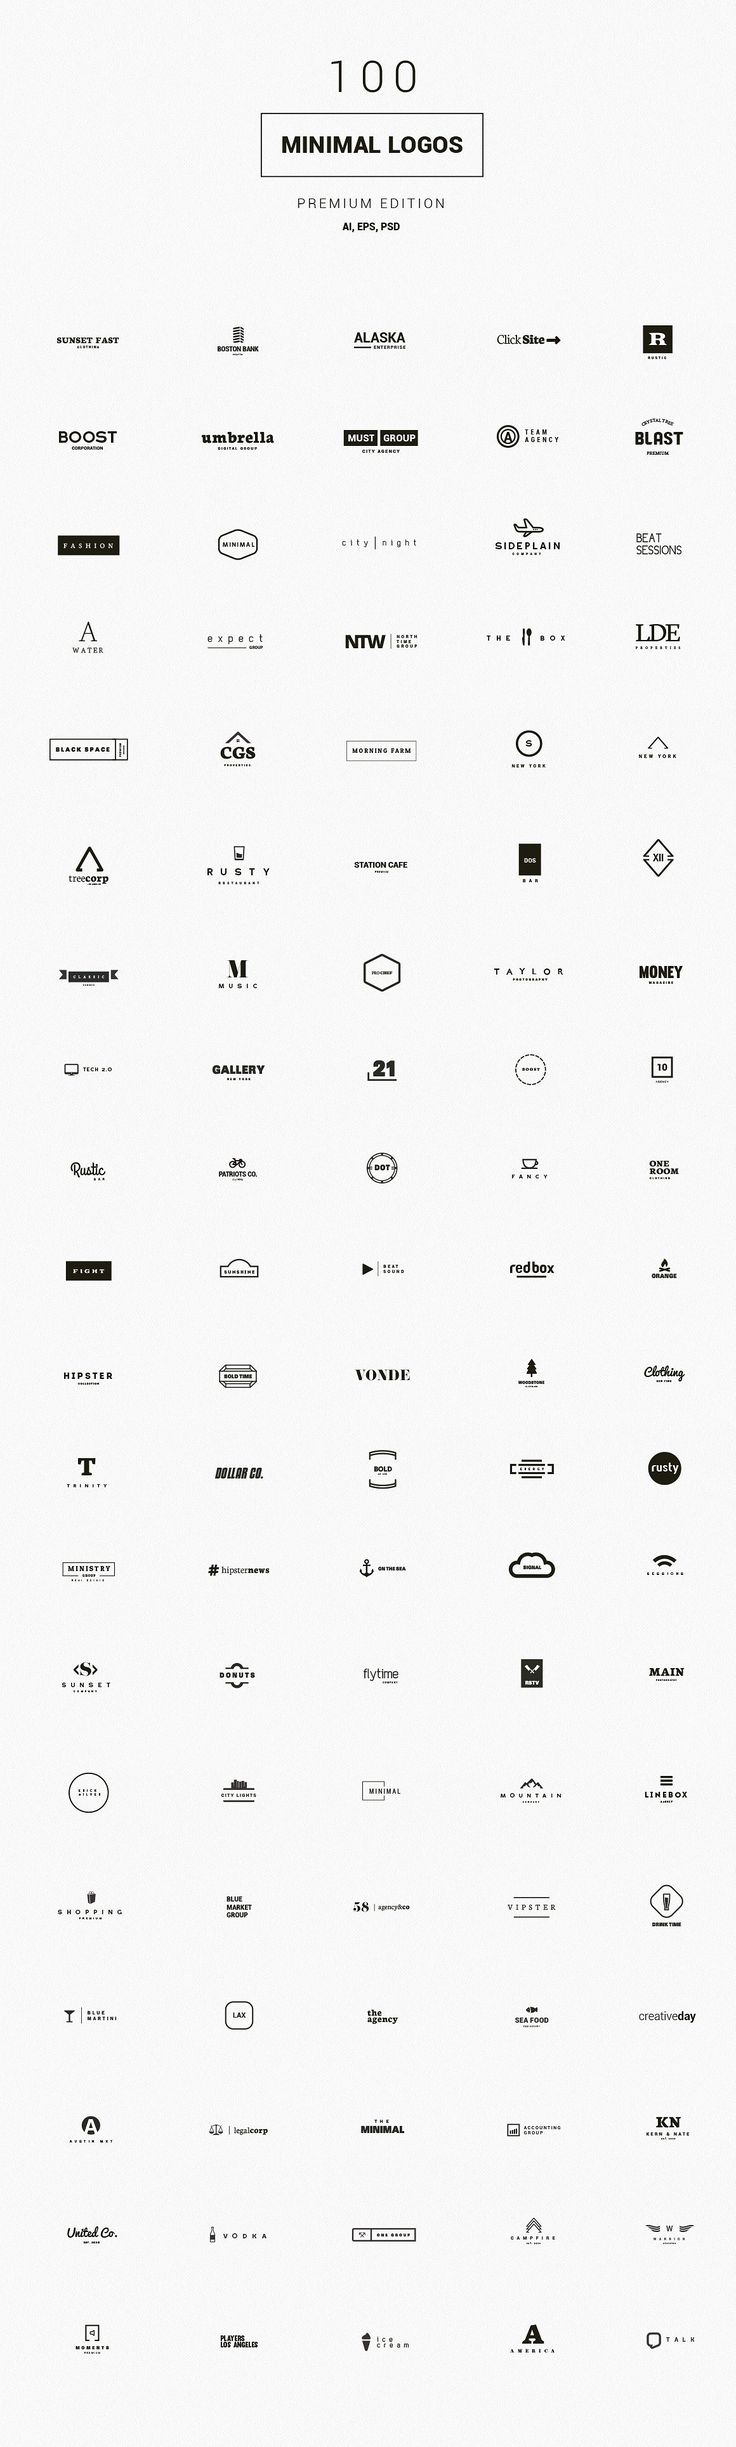 100 Minimal Logos - Premium Kit by design_district on @creativemarket